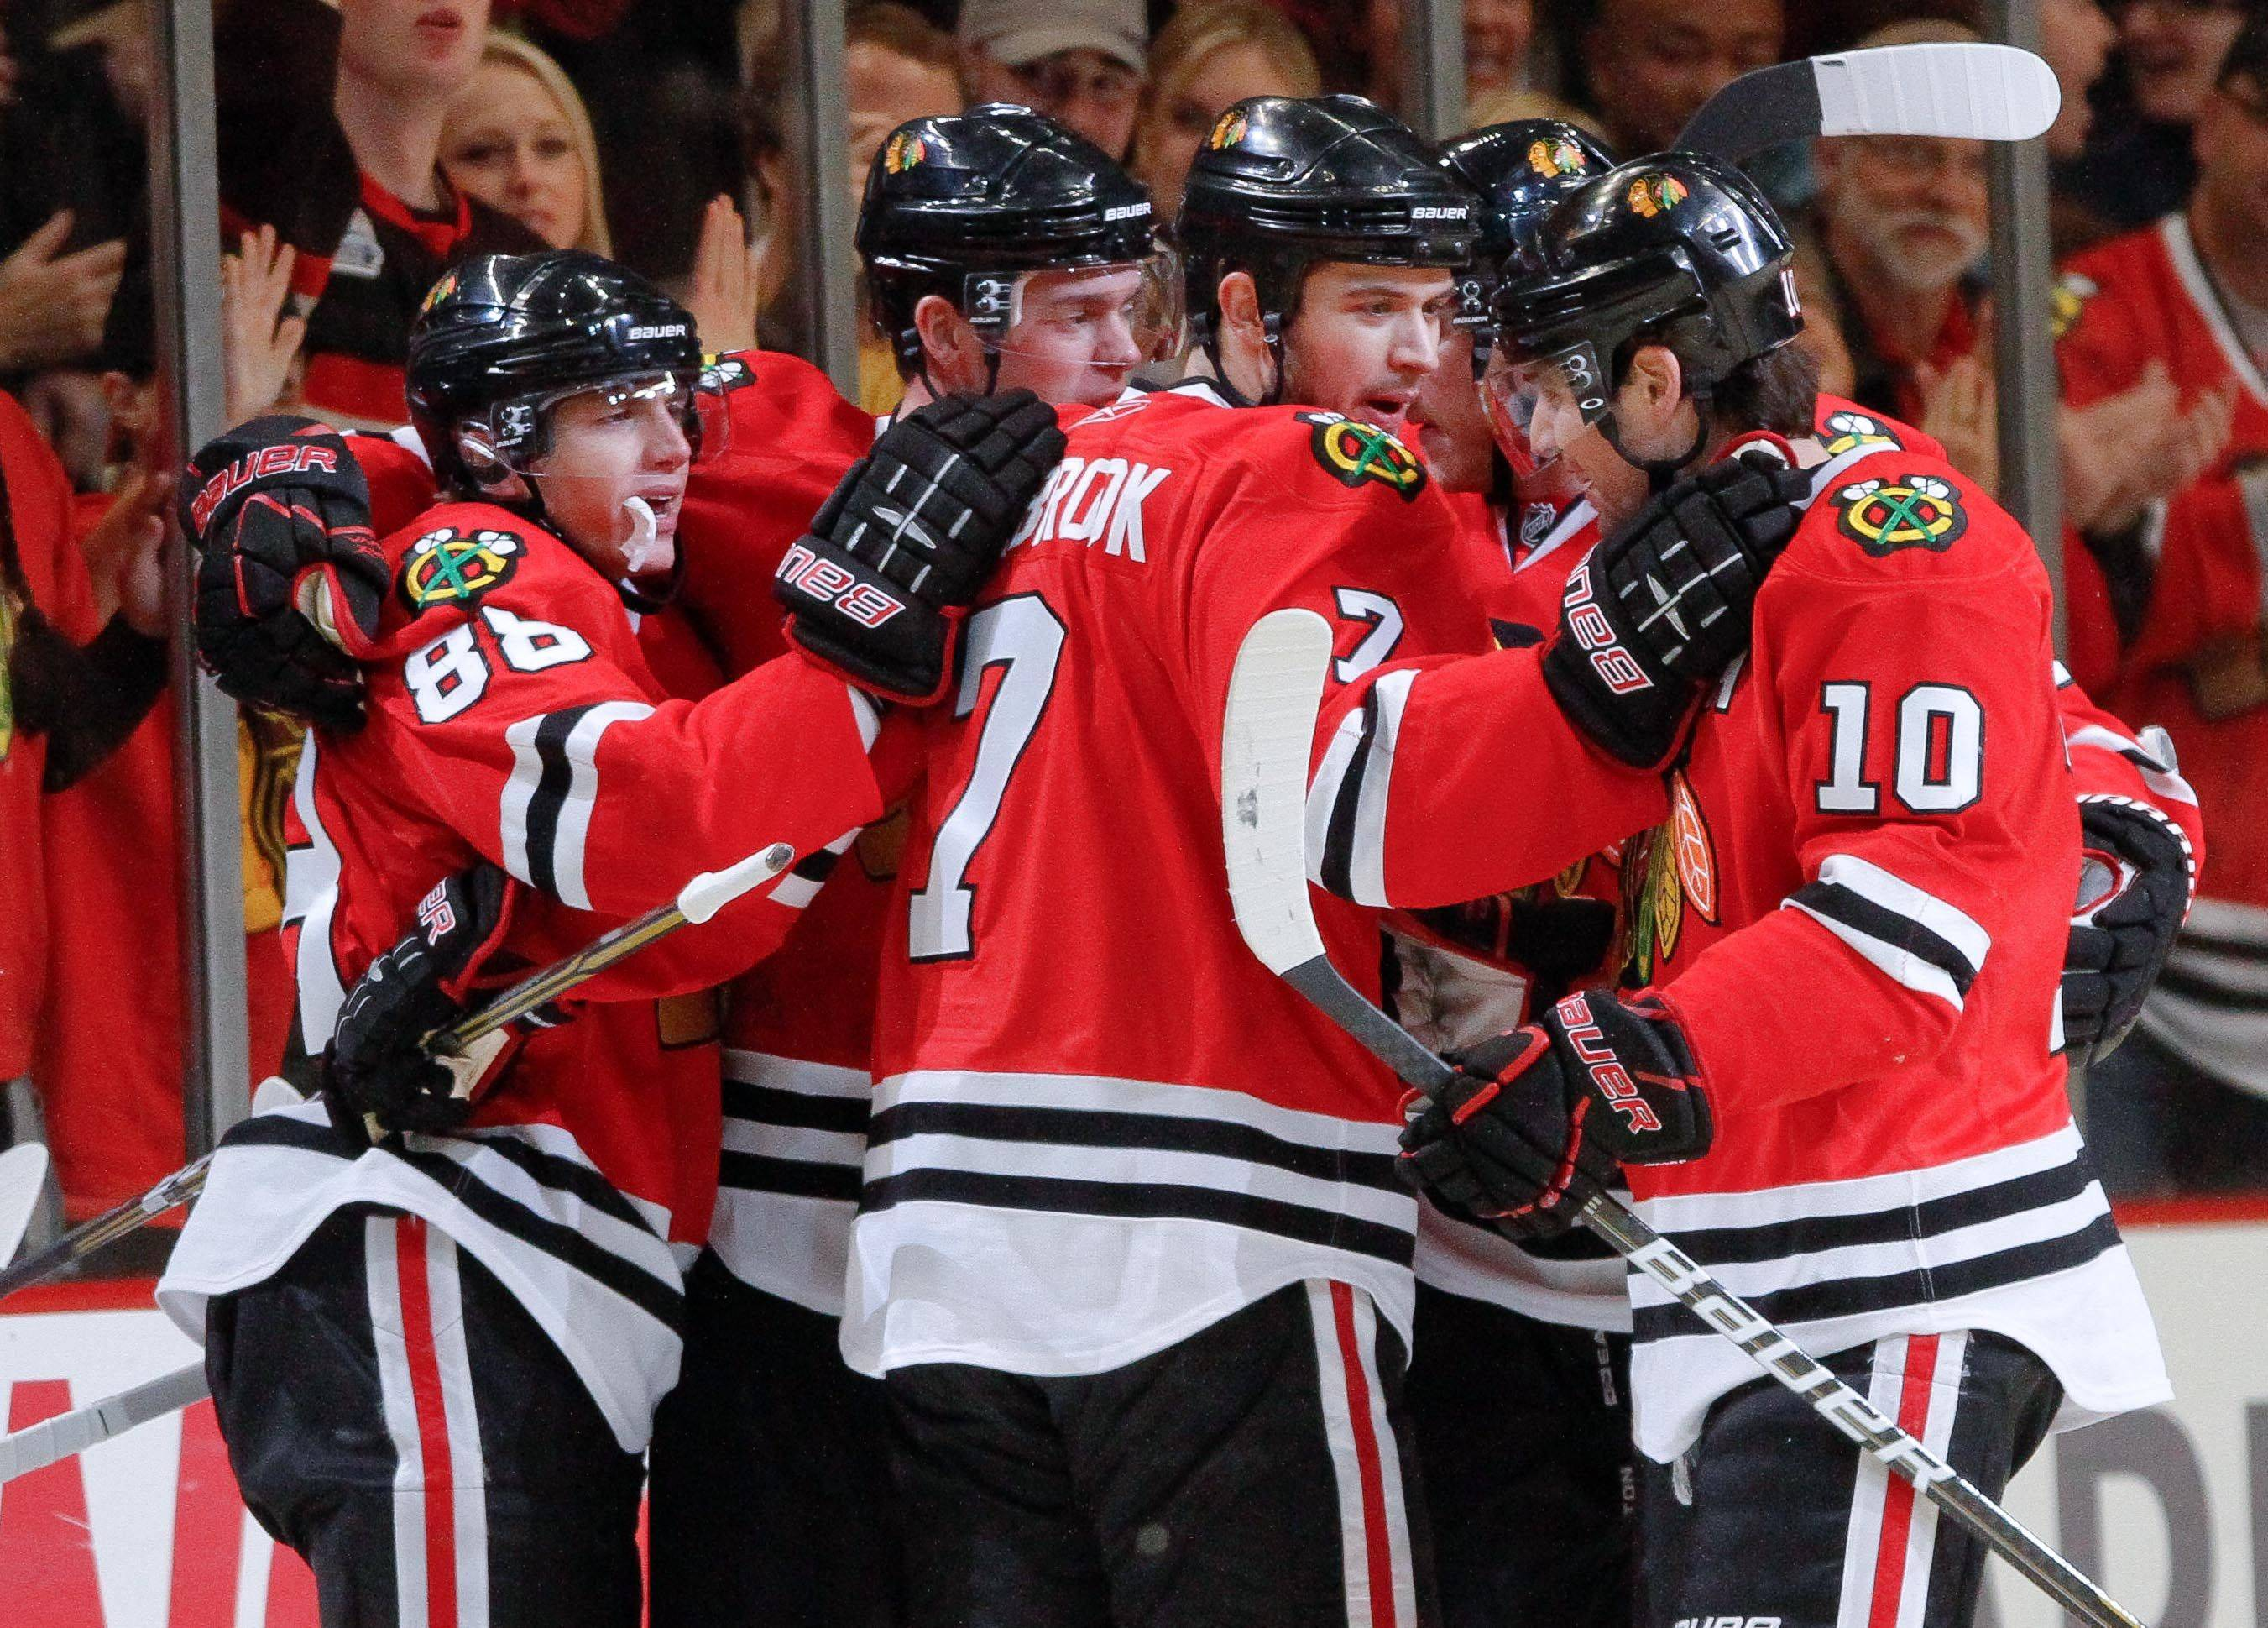 After taking 3 out of 4 points against Nashville and Anaheim, the Blackhawks hit the road in need of more wins. They take a 9-9-2 record on the road trip, which opens with Edmonton.